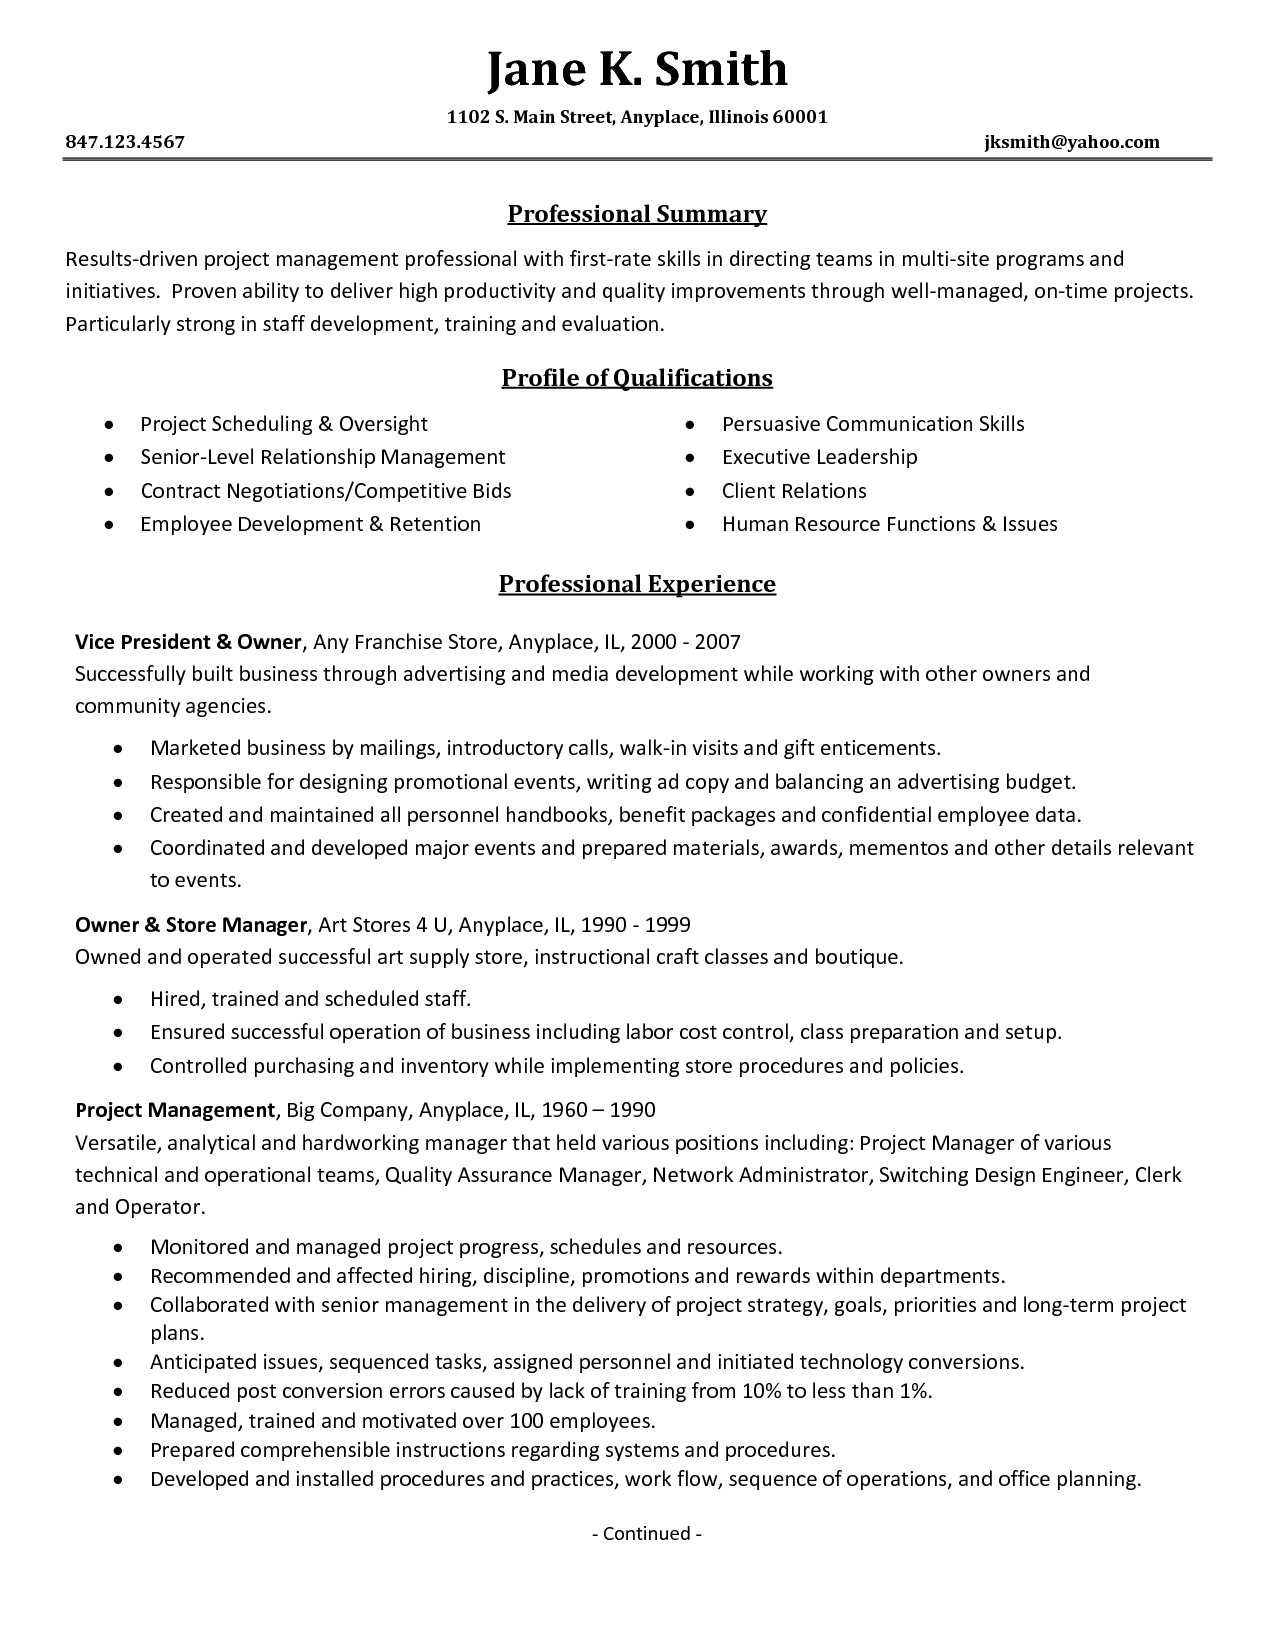 Resume Examples Skills Custom Leadership Skills Resume Leadership Skills Resume Template…  Job Design Inspiration